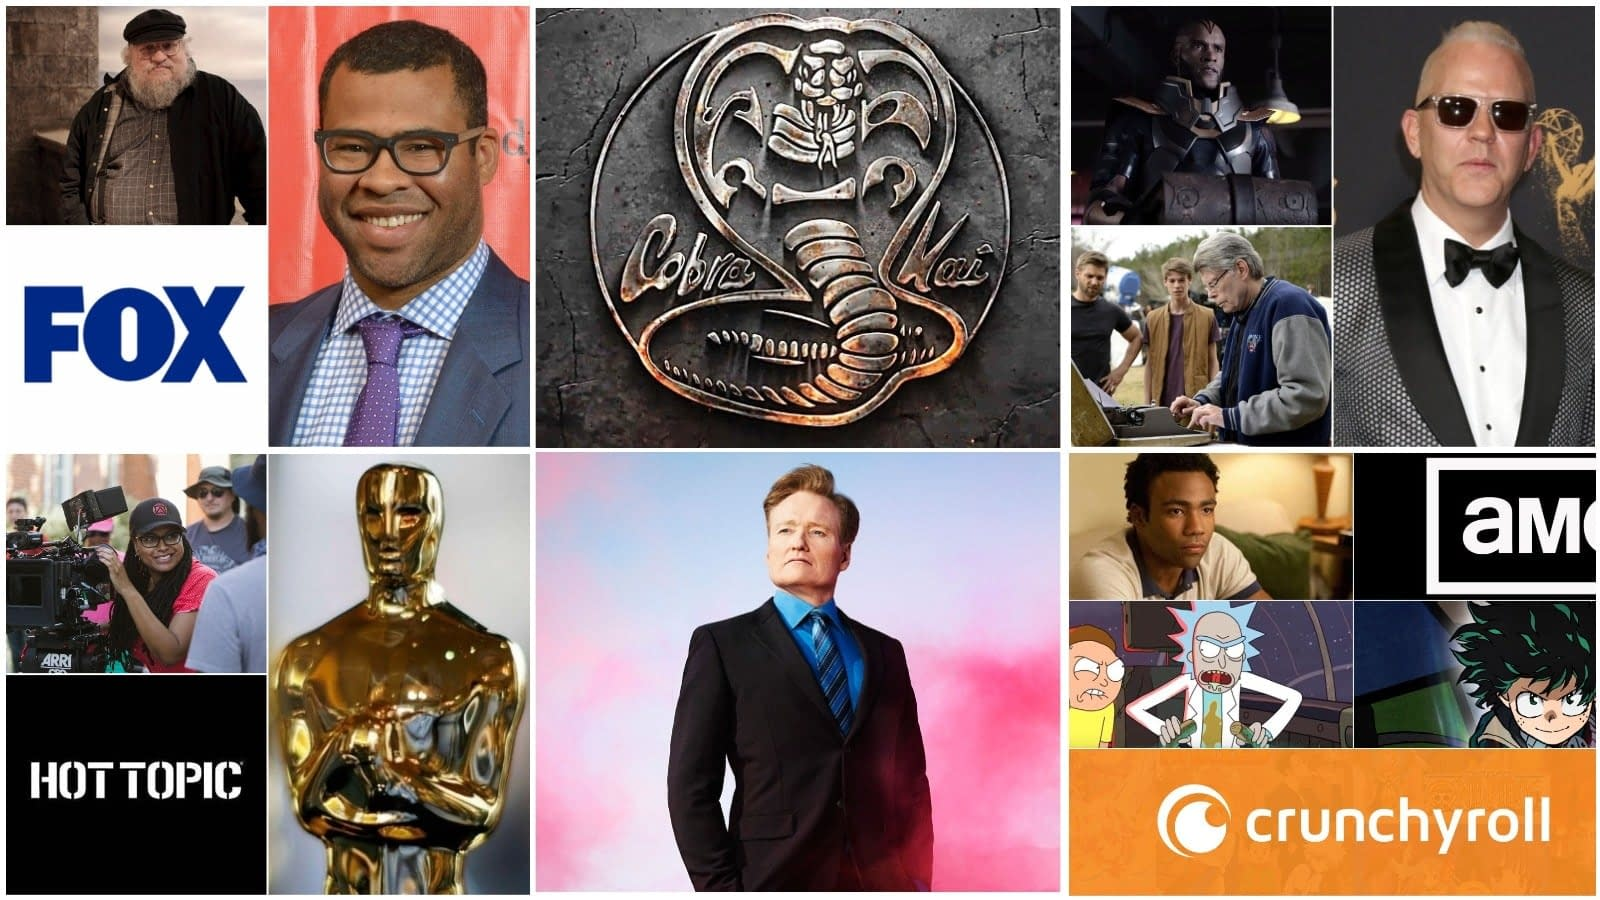 The Bleeding Cool Top 25 TV Influencers 2019: The Complete List